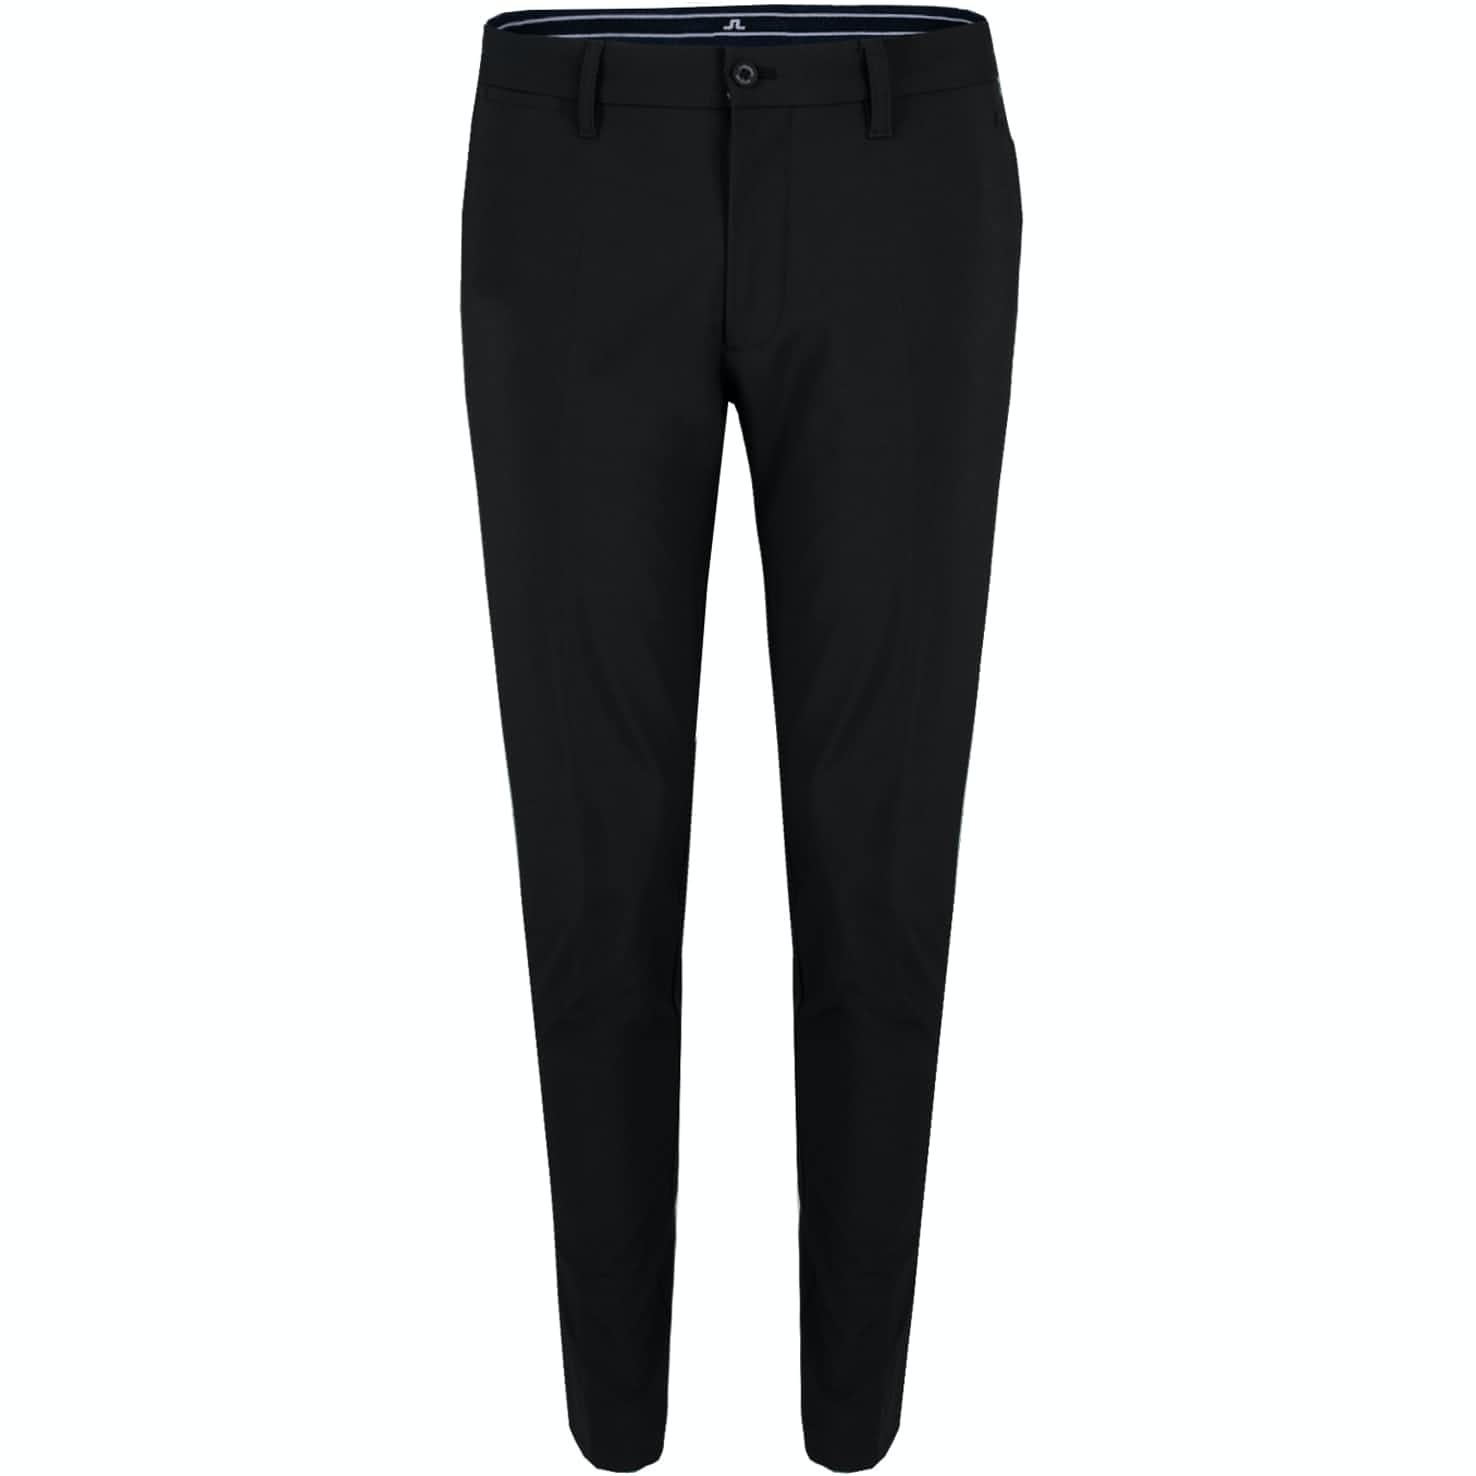 Ellott Tight Bonded Micro Stretch Black - AW19